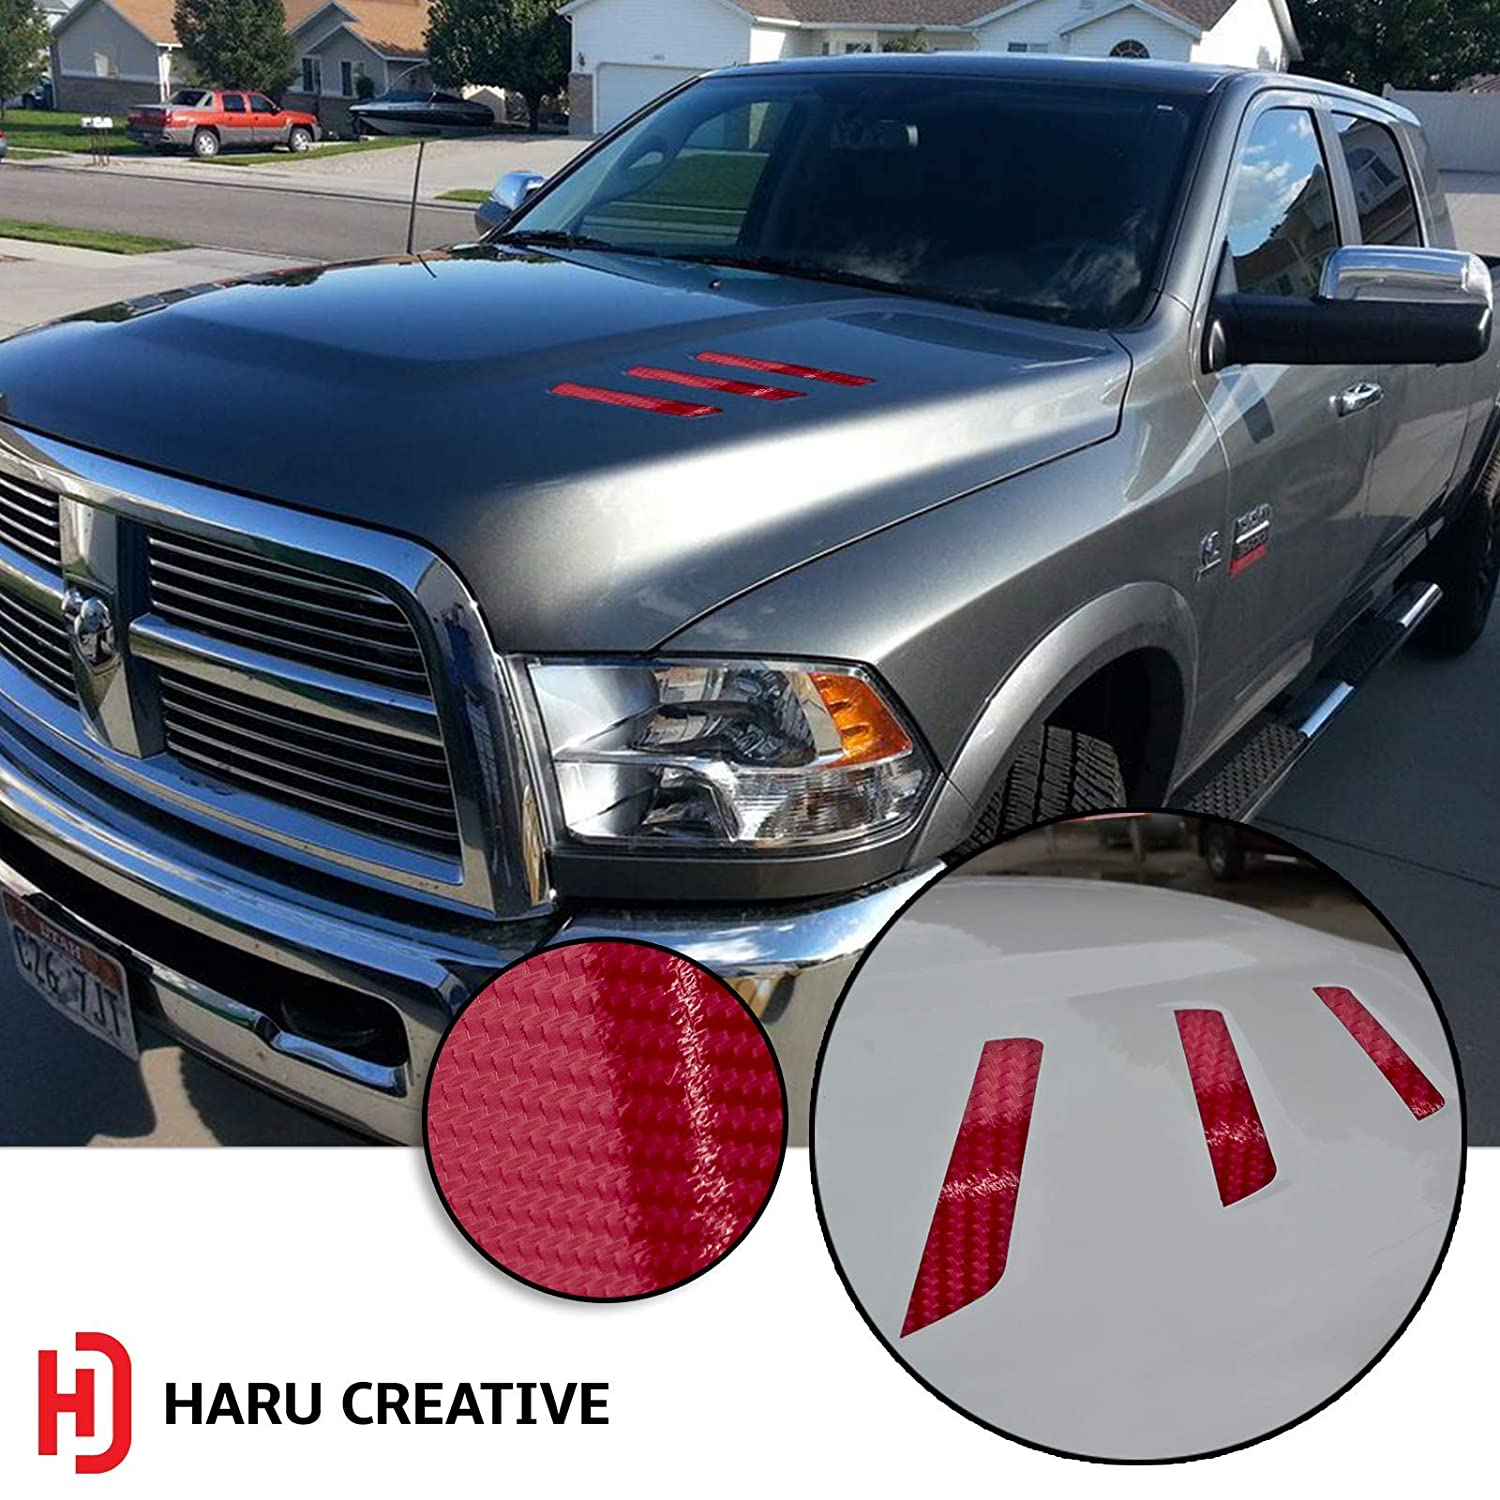 Haru Creative 2010-2018 Front Hood Grille Stripe Insert Overlay Vinyl Decal Sticker Compatible with and Fits Dodge Ram - 5D Gloss Carbon Fiber Black Loyo